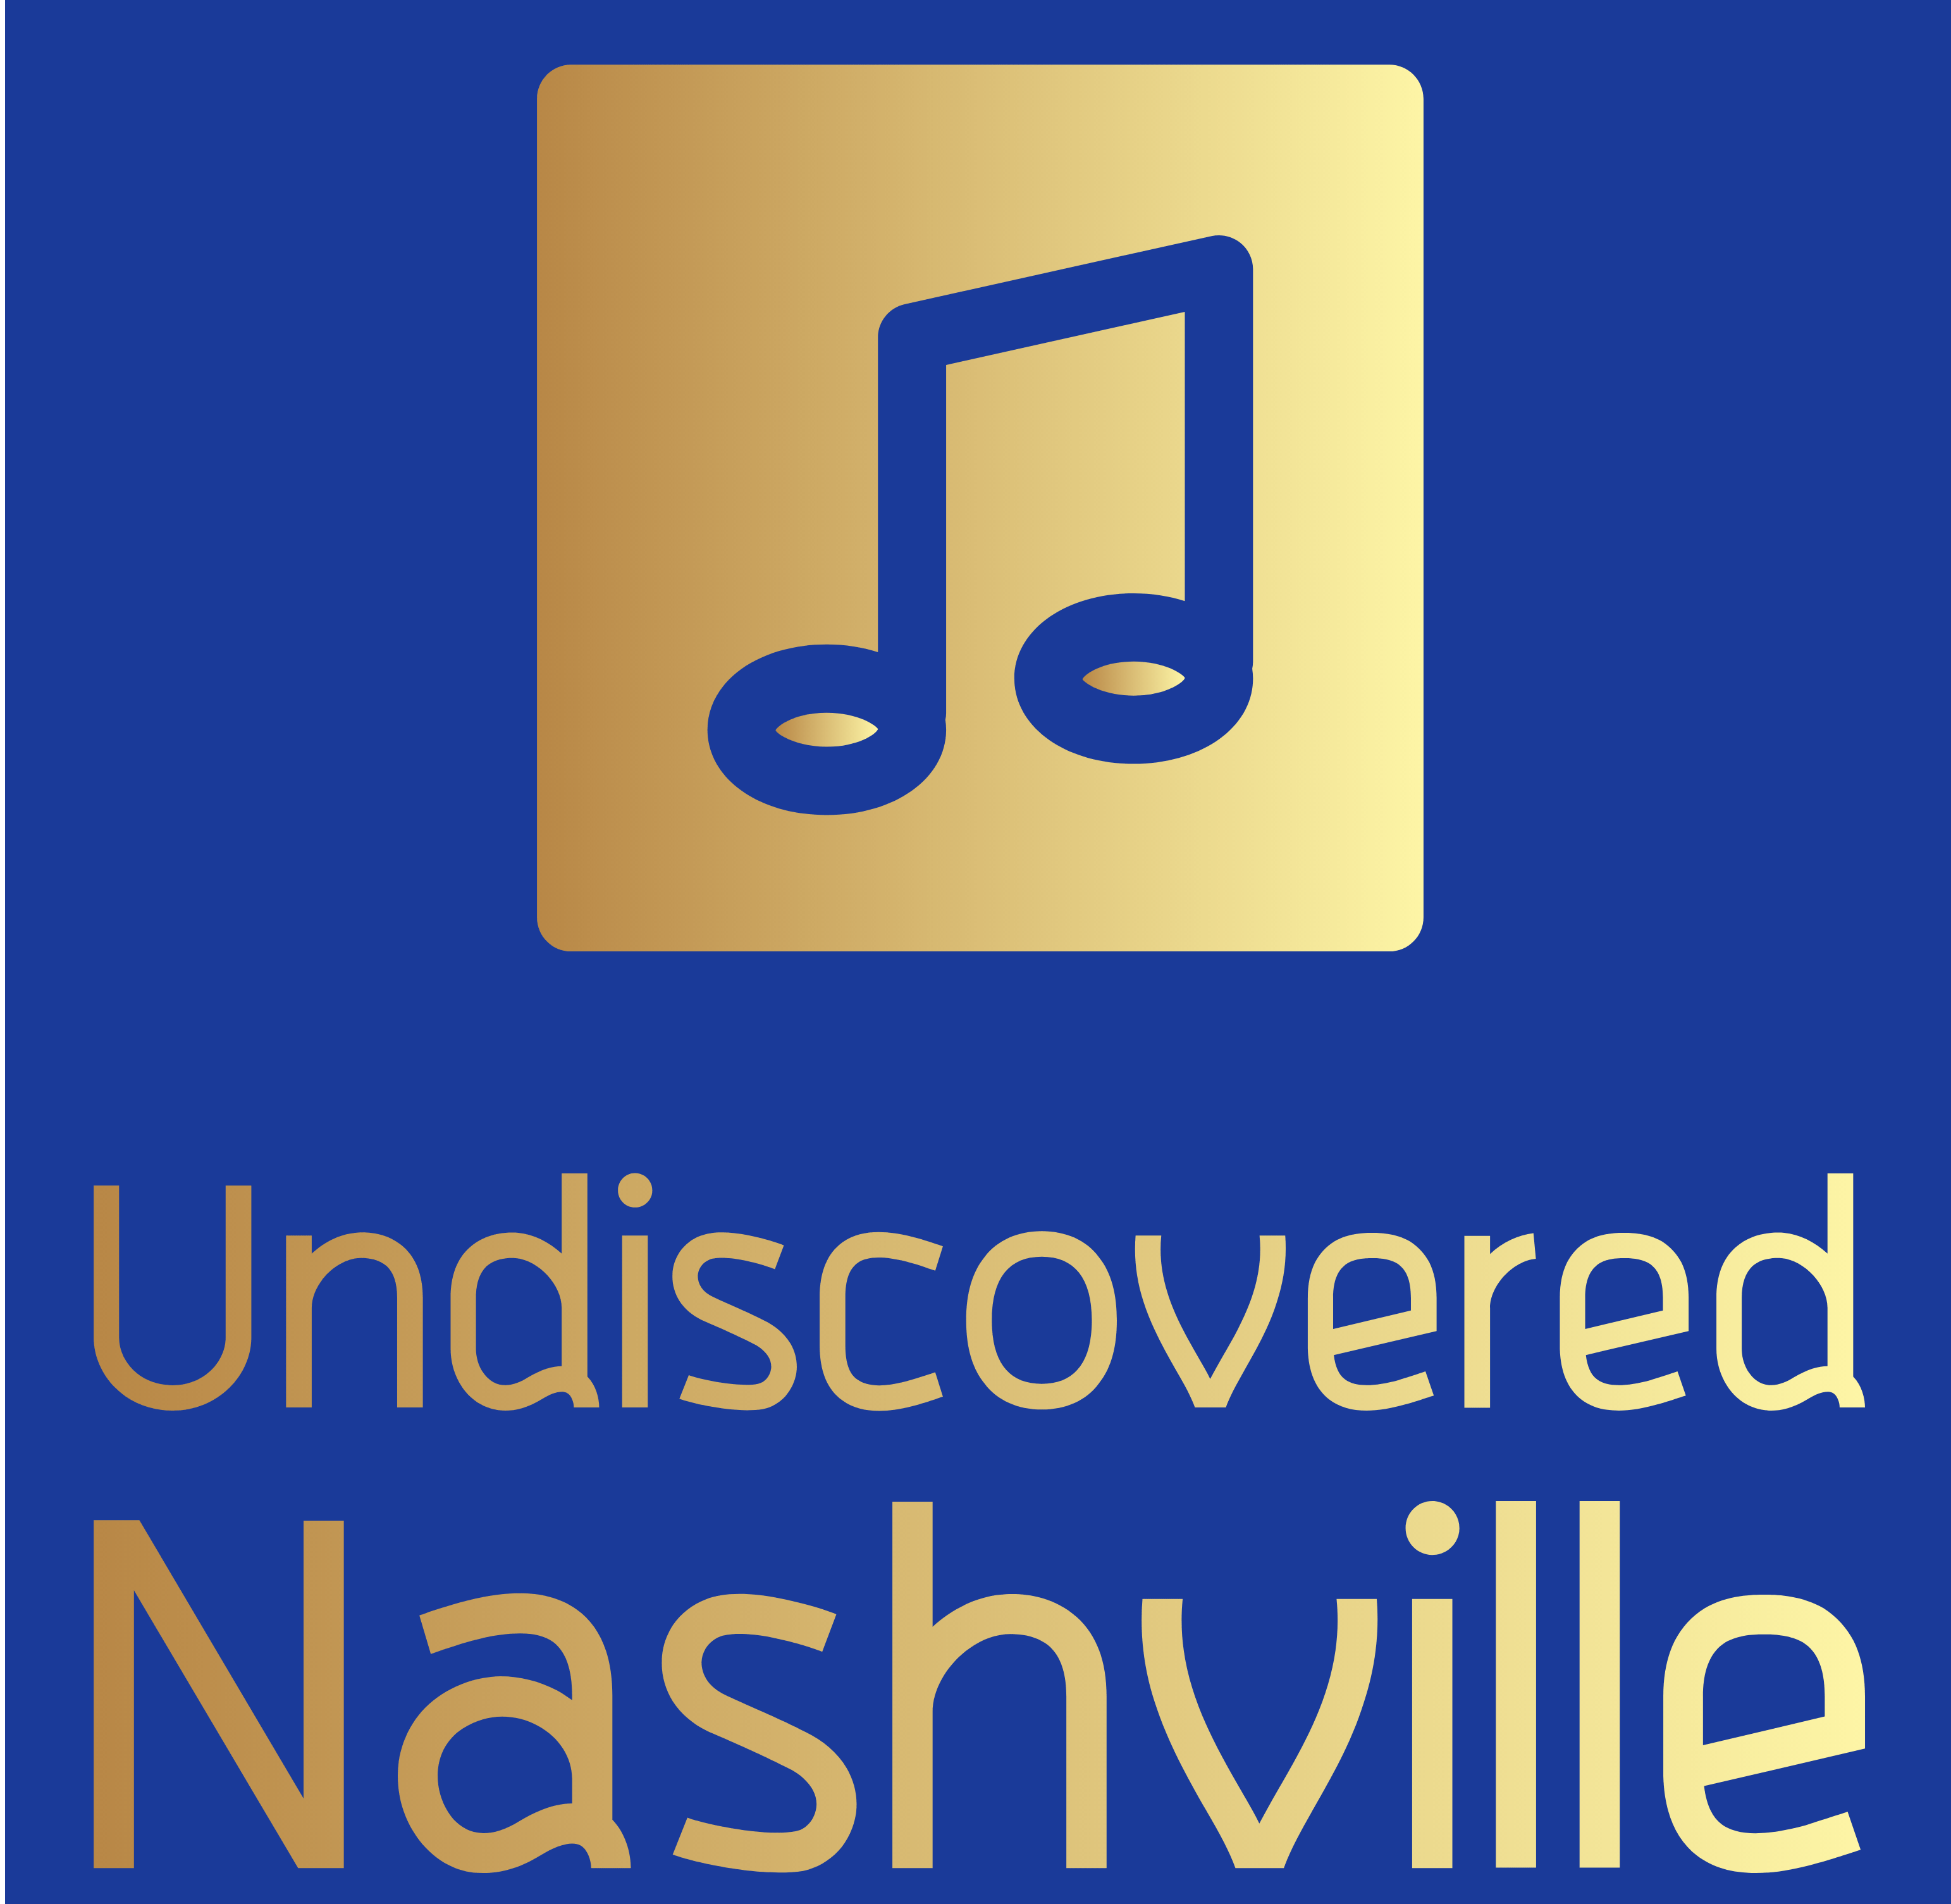 Undiscovered Nashville